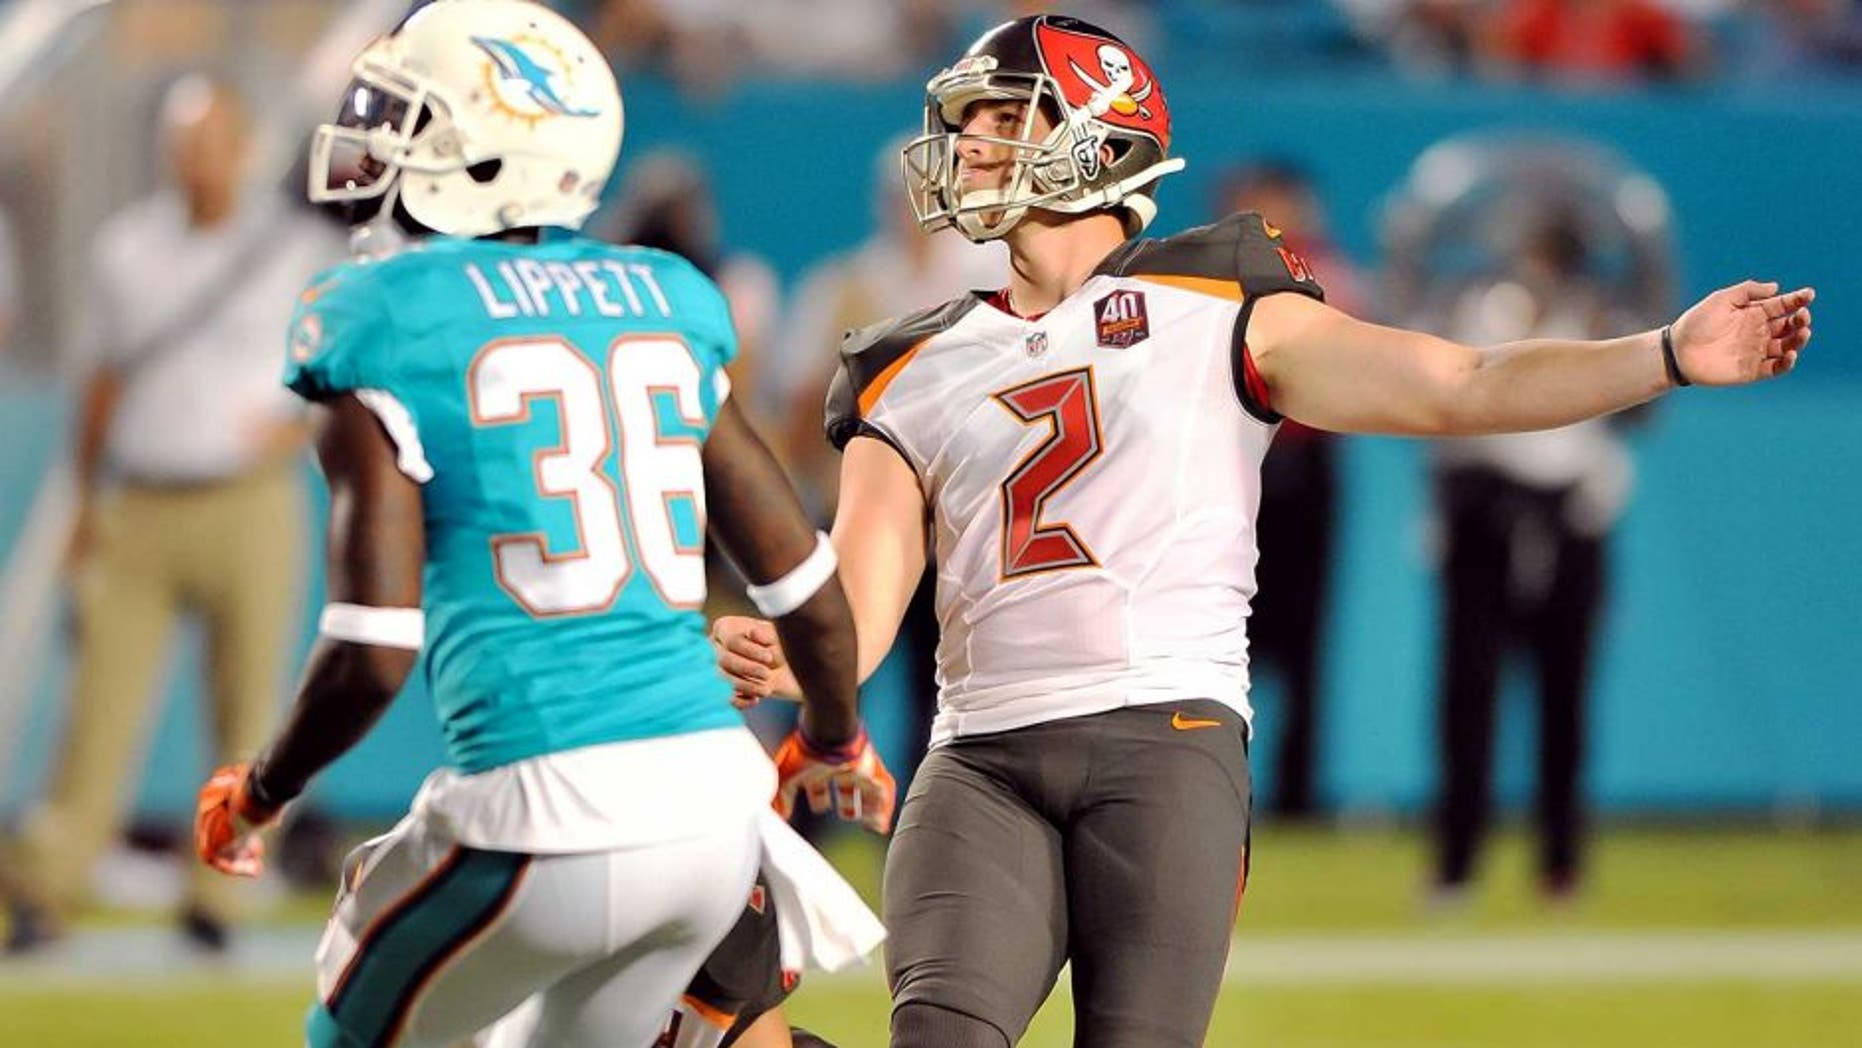 Sep 3, 2015; Miami Gardens, FL, USA; Tampa Bay Buccaneers kicker Kyle Brindza (2) kicks a field goal as Miami Dolphins defensive back Tony Lippett (36) looks on during the first half at Sun Life Stadium. Mandatory Credit: Steve Mitchell-USA TODAY Sports